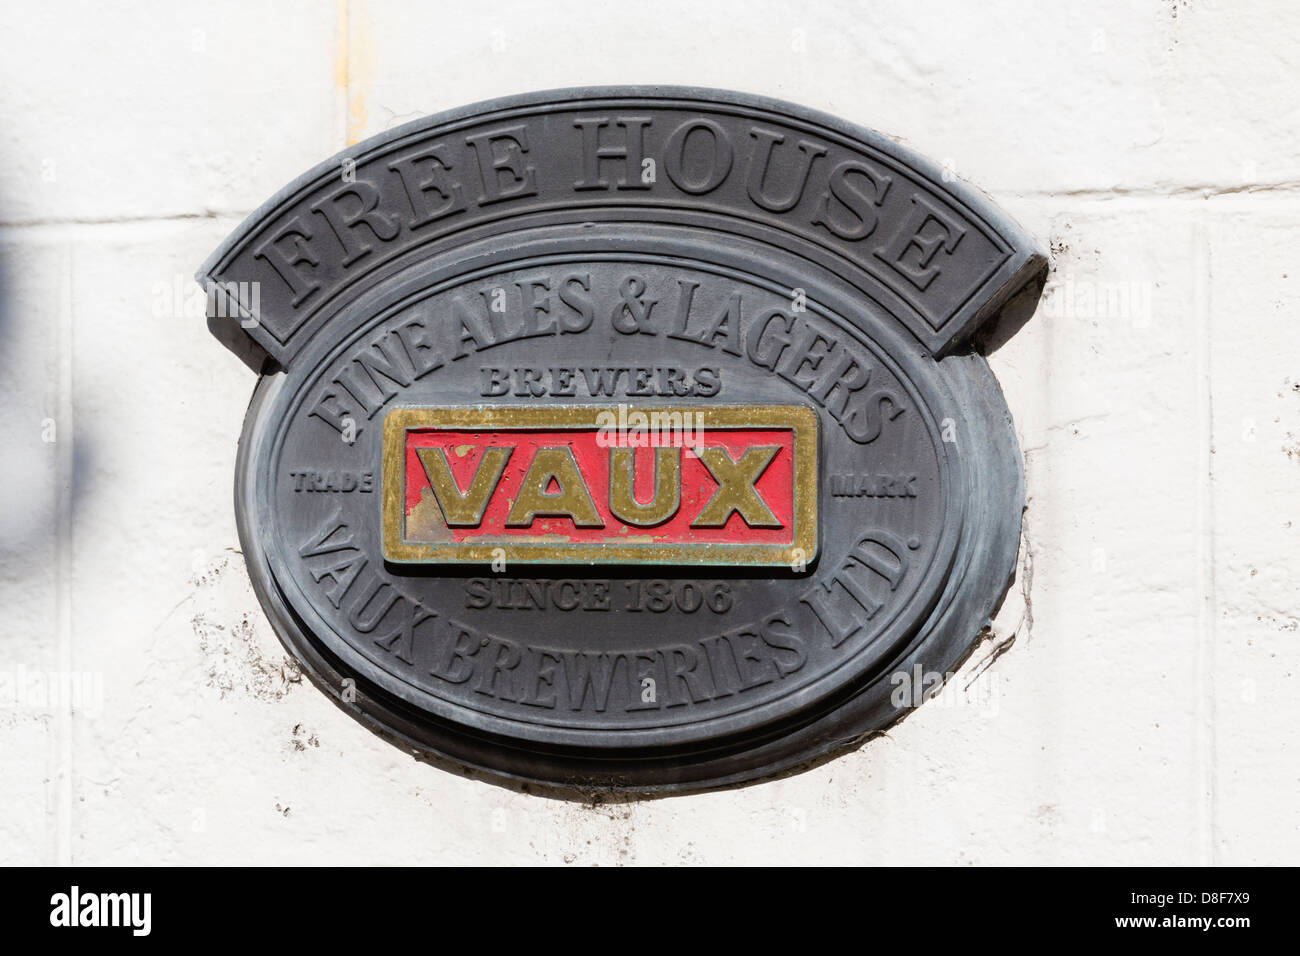 Old cast sign for Sunderland 'Vaux' breweries on a hotel wall in Warkworth, Northumberland - Stock Image